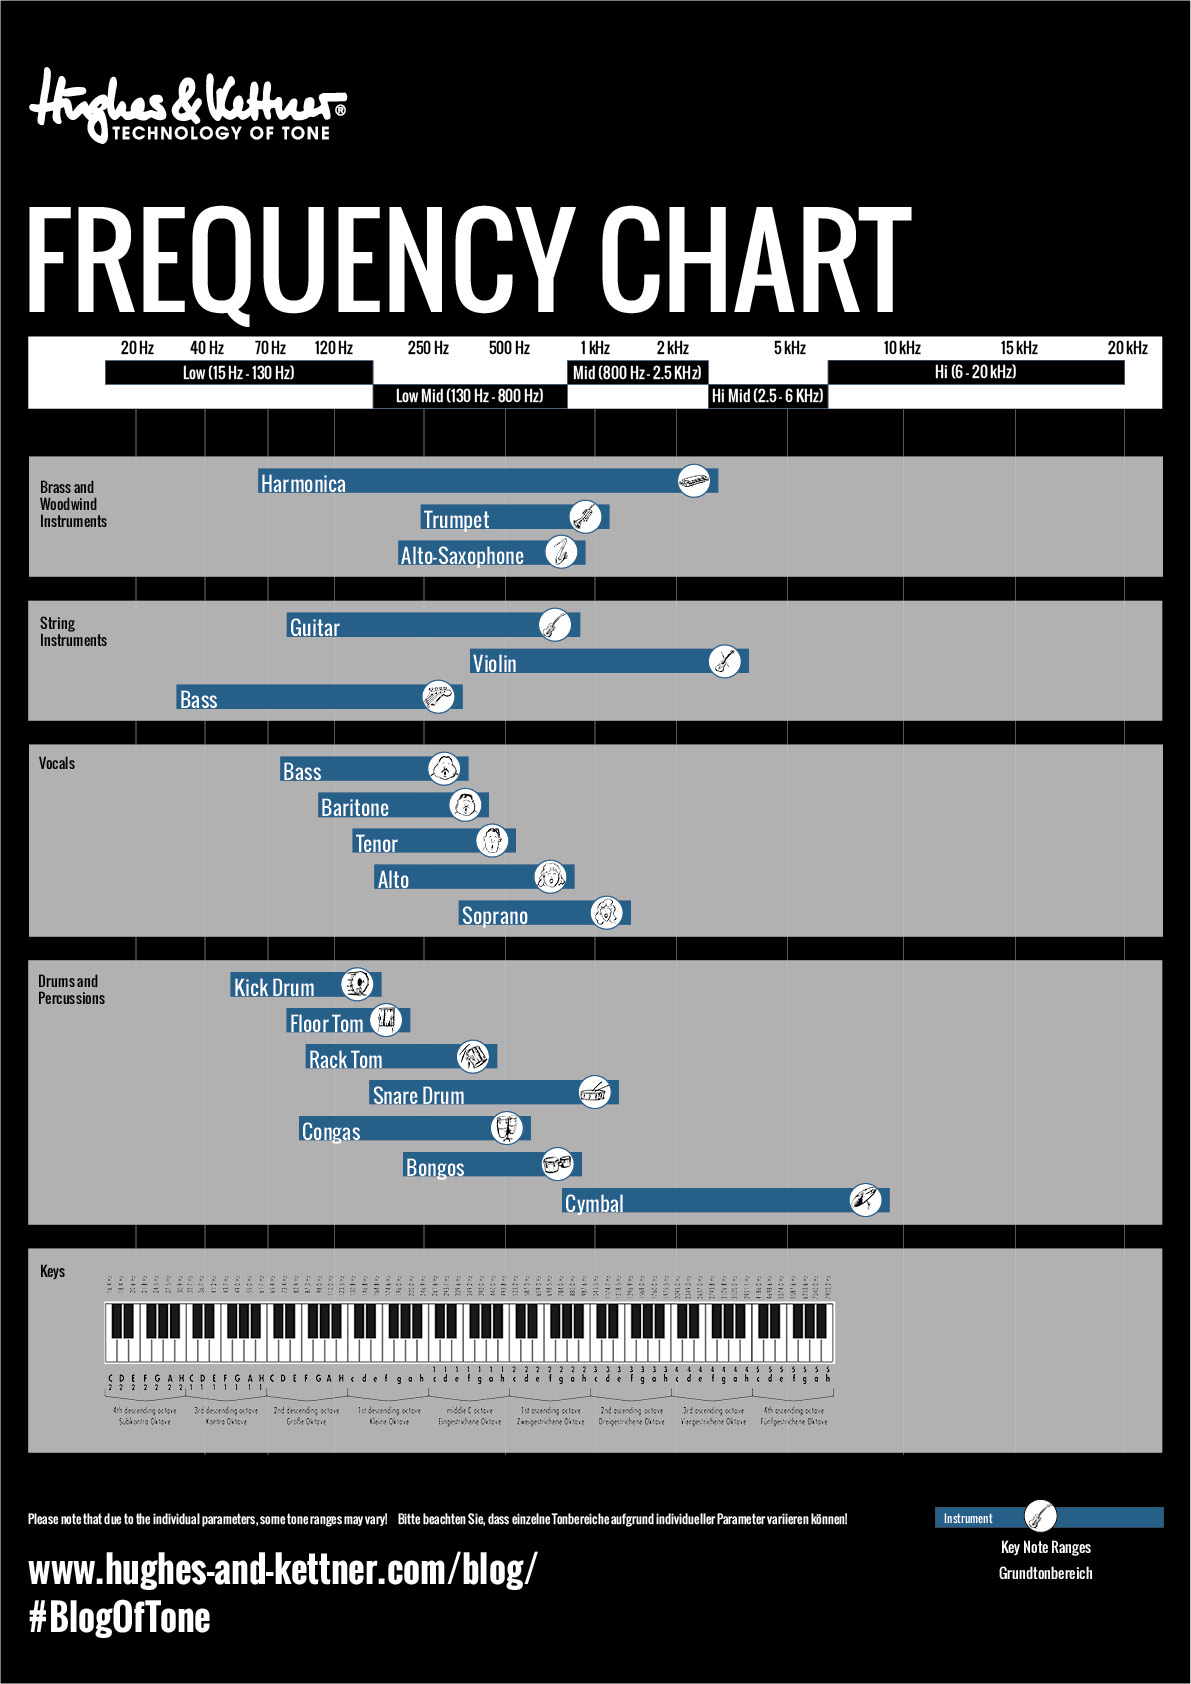 Bass Guitar Amp Frequency : presence resonance and eq settings for a great live guitar tone hughes kettner blog ~ Hamham.info Haus und Dekorationen